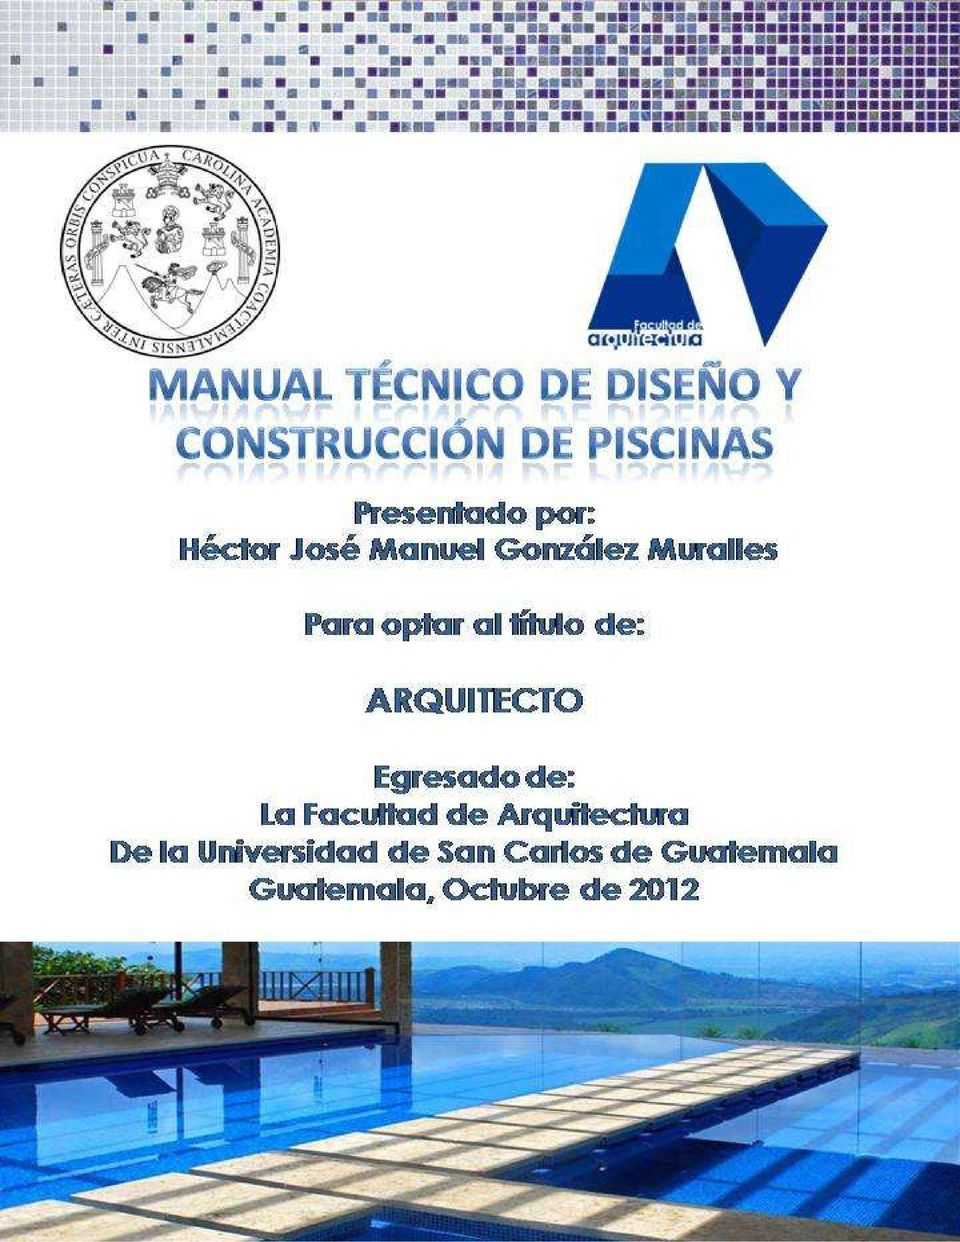 manual t cnico de dise o y construcci n de piscinas On manual construccion de piscinas